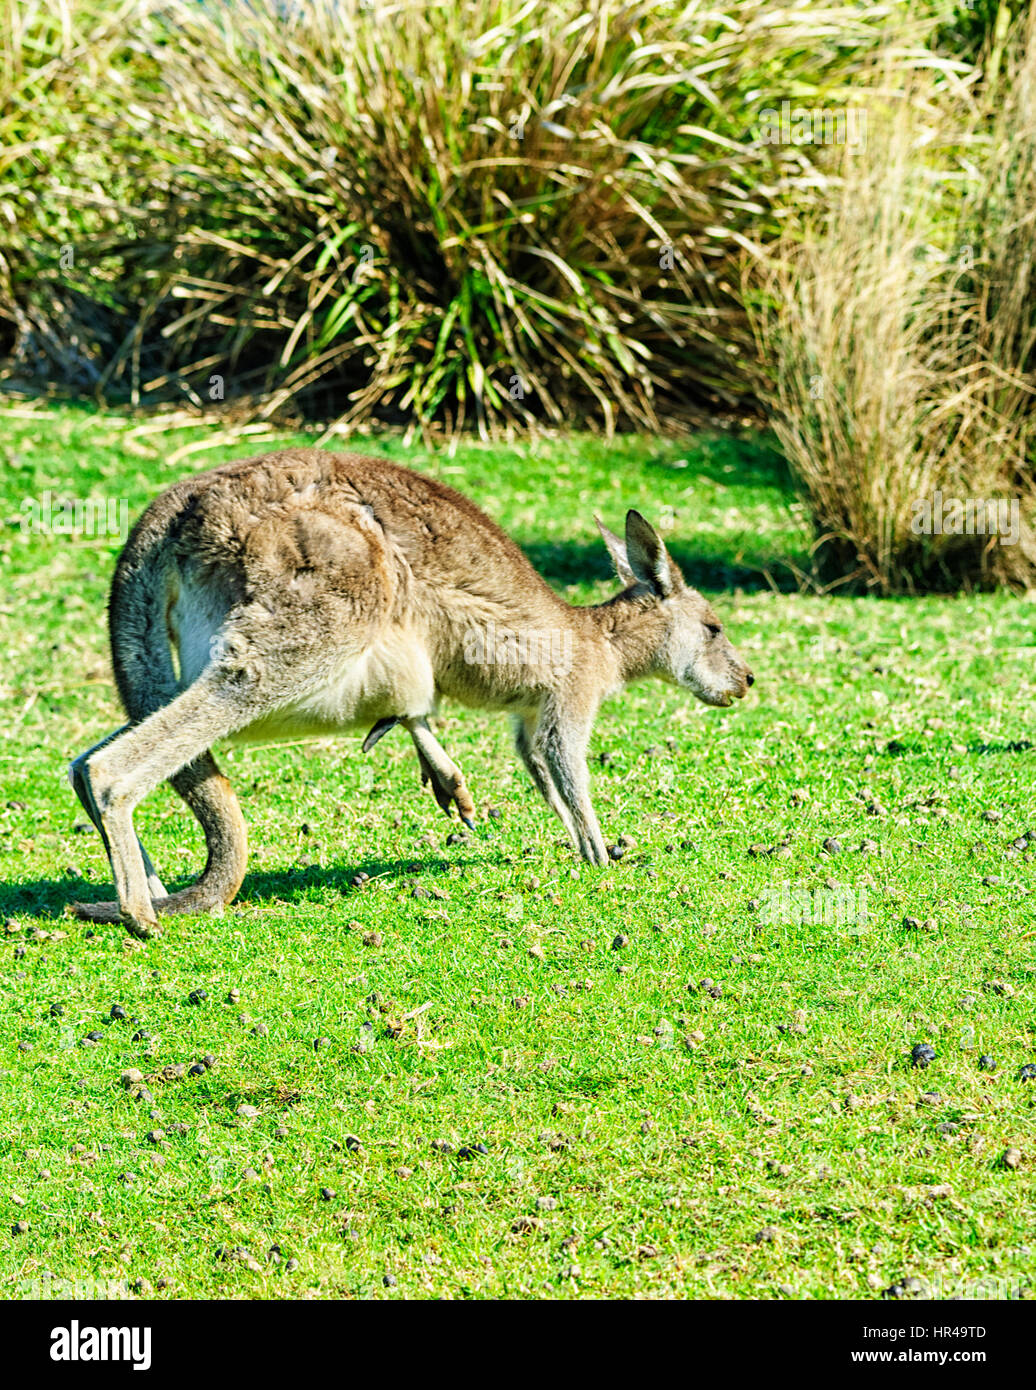 Eastern Grey Kangaroo (Macropus giganteus)  with joey's leg sticking out of the pouch, Potato Point, New South - Stock Image